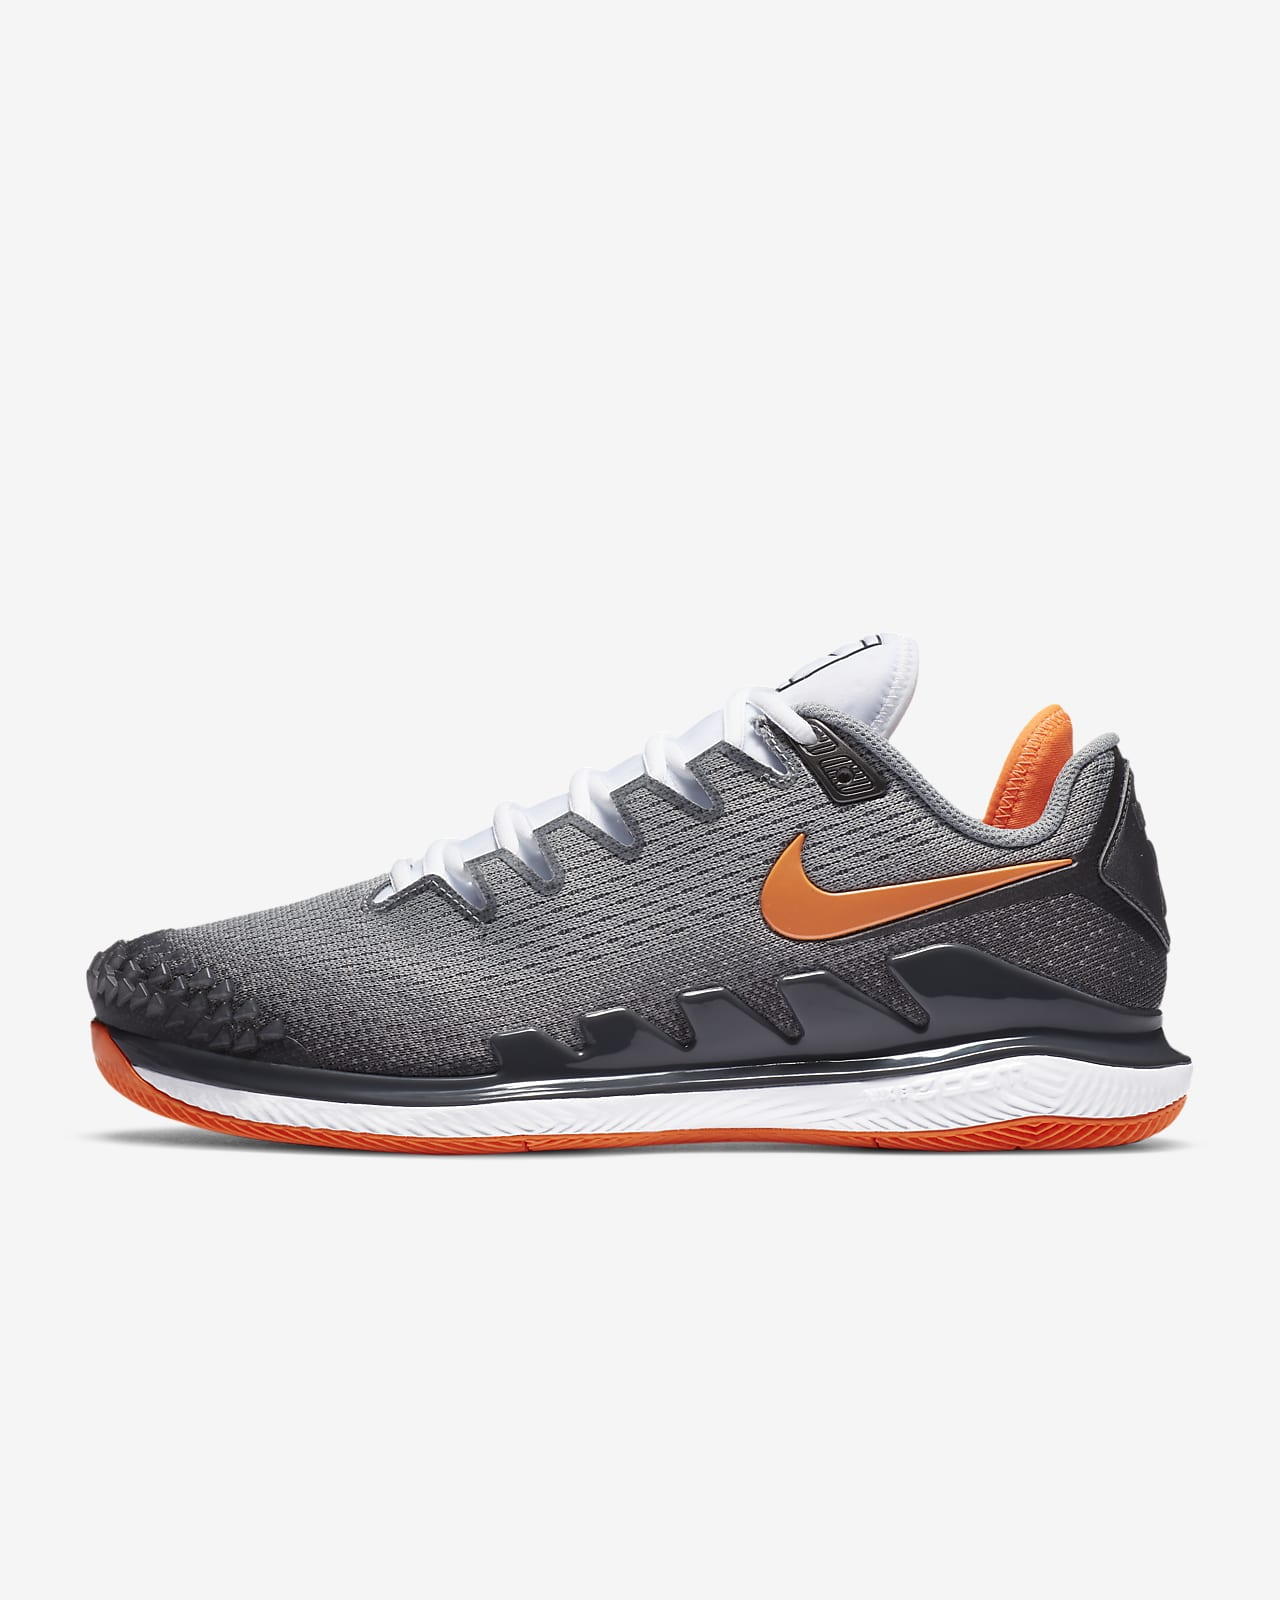 Nikecourt Air Zoom Vapor X Knit Men S Hard Court Tennis Shoe Nike Com